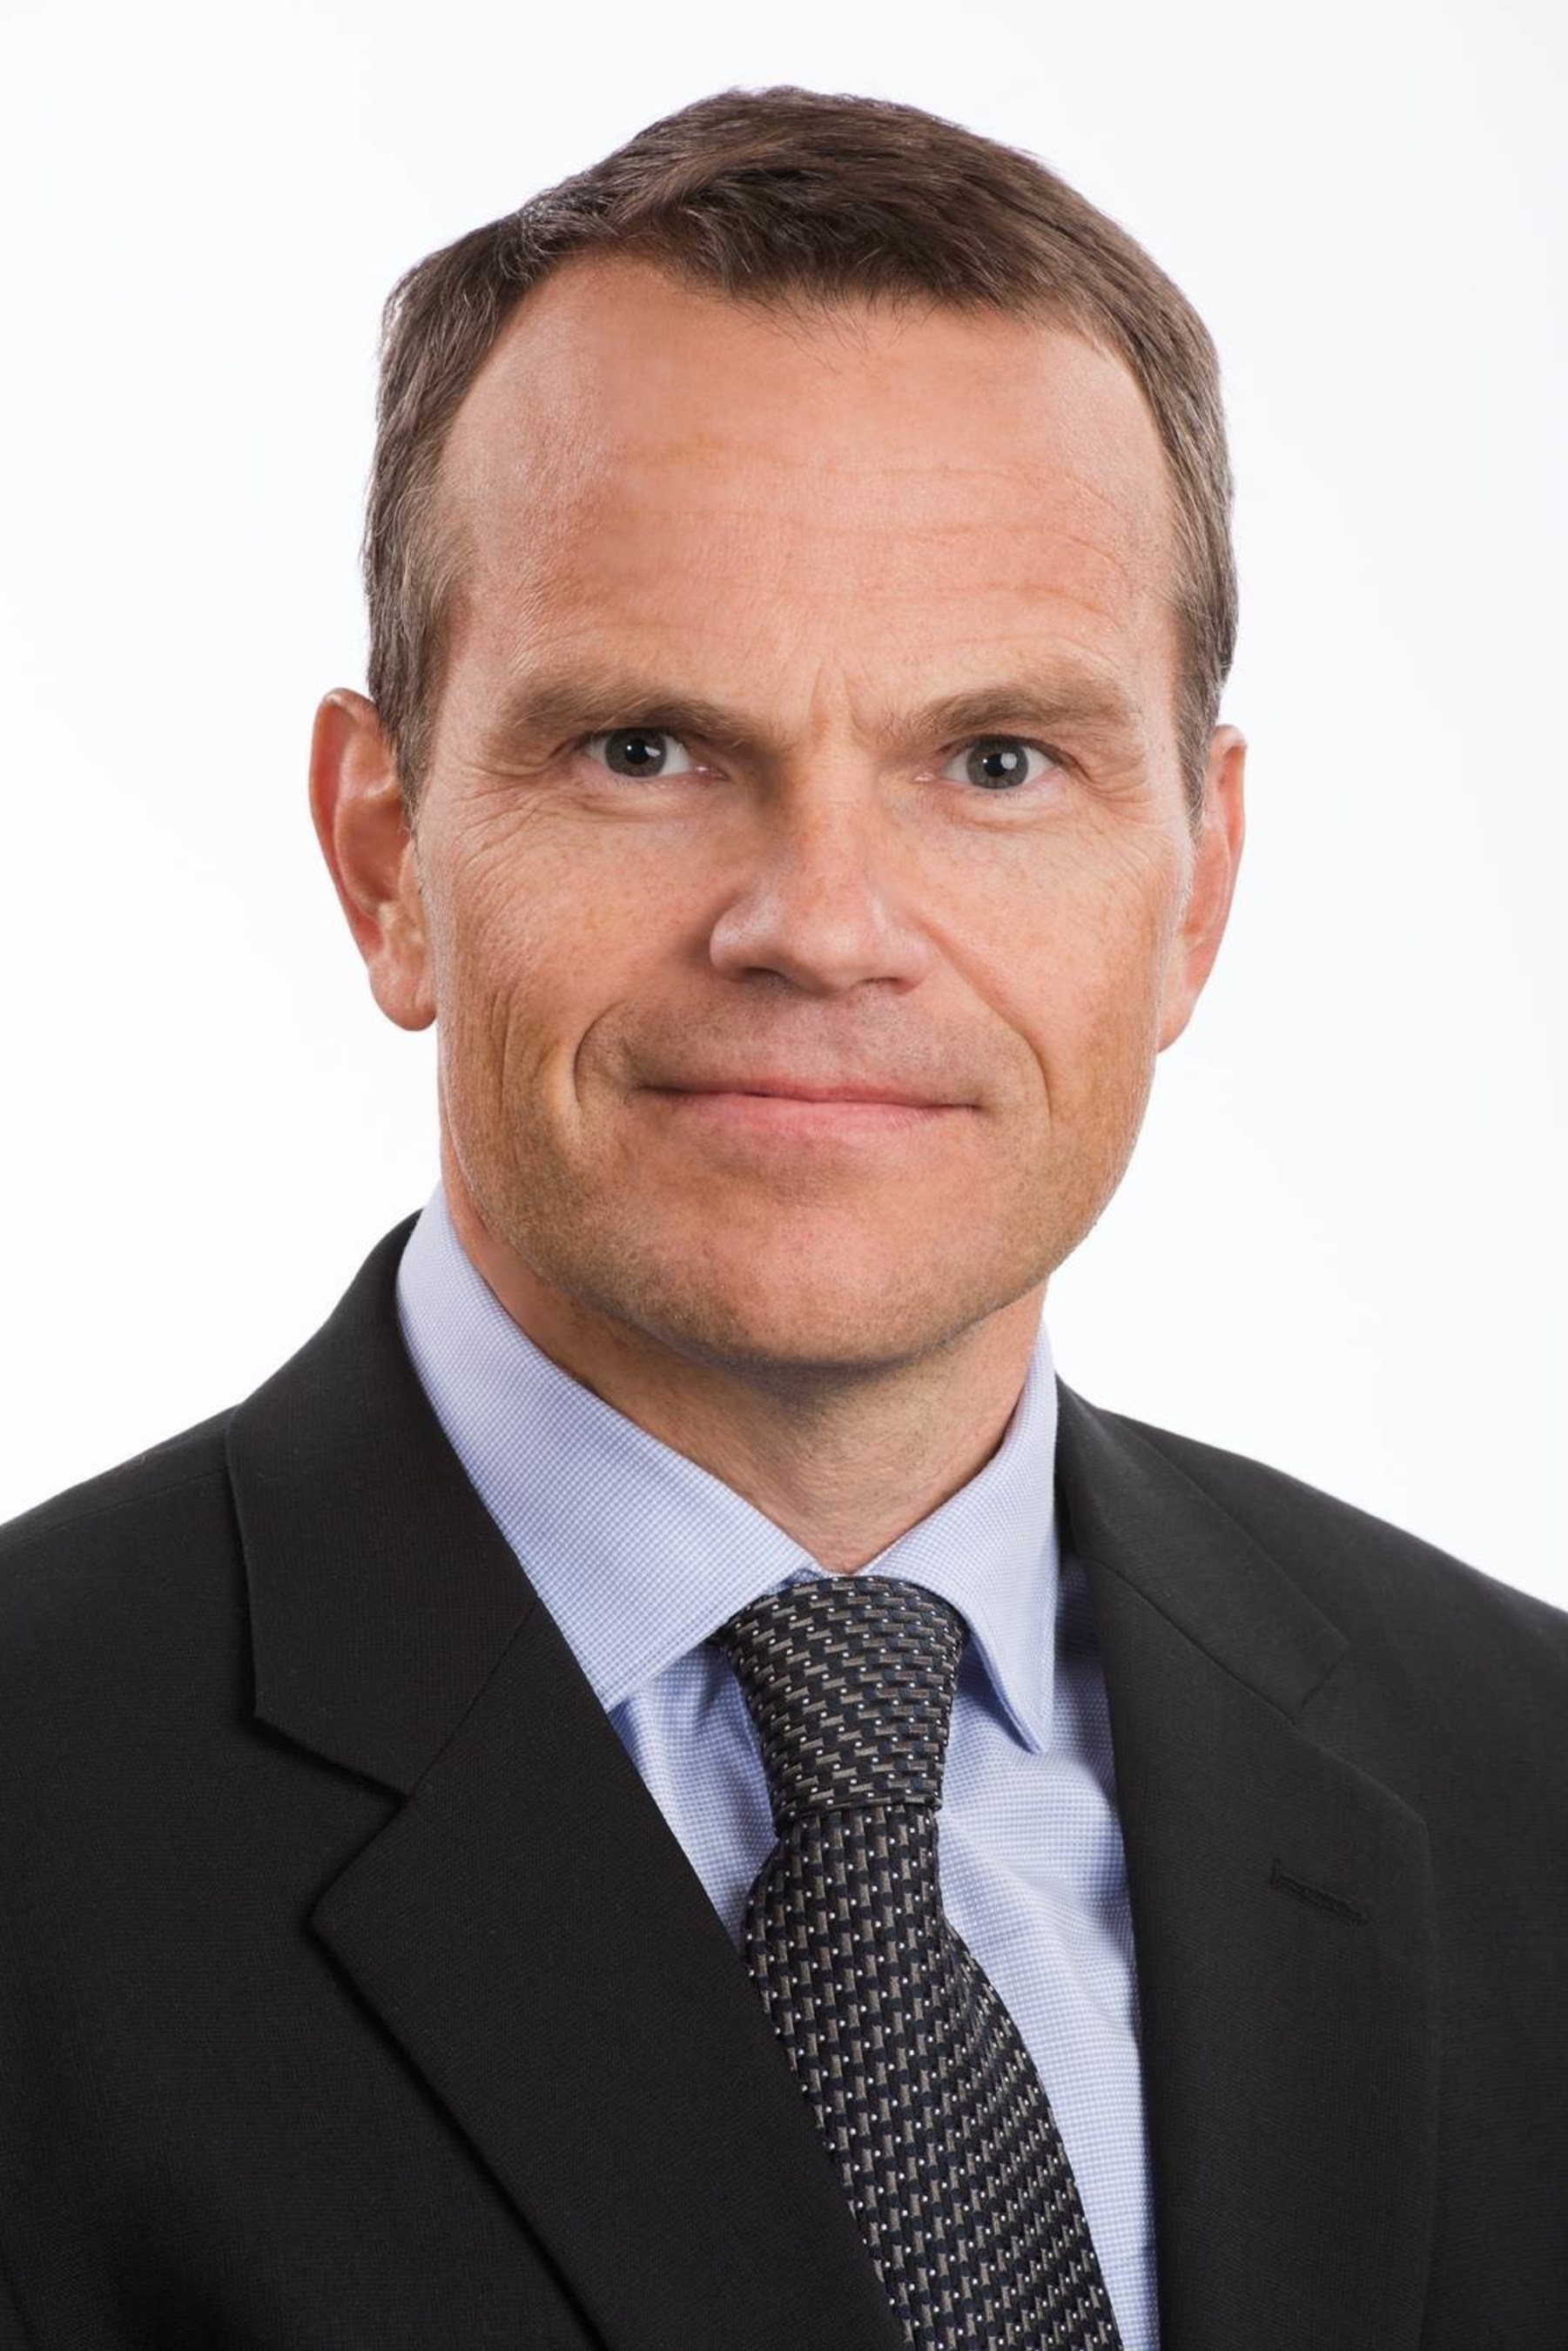 Jack Govers, executive vice president, president of Europe and Global Markets